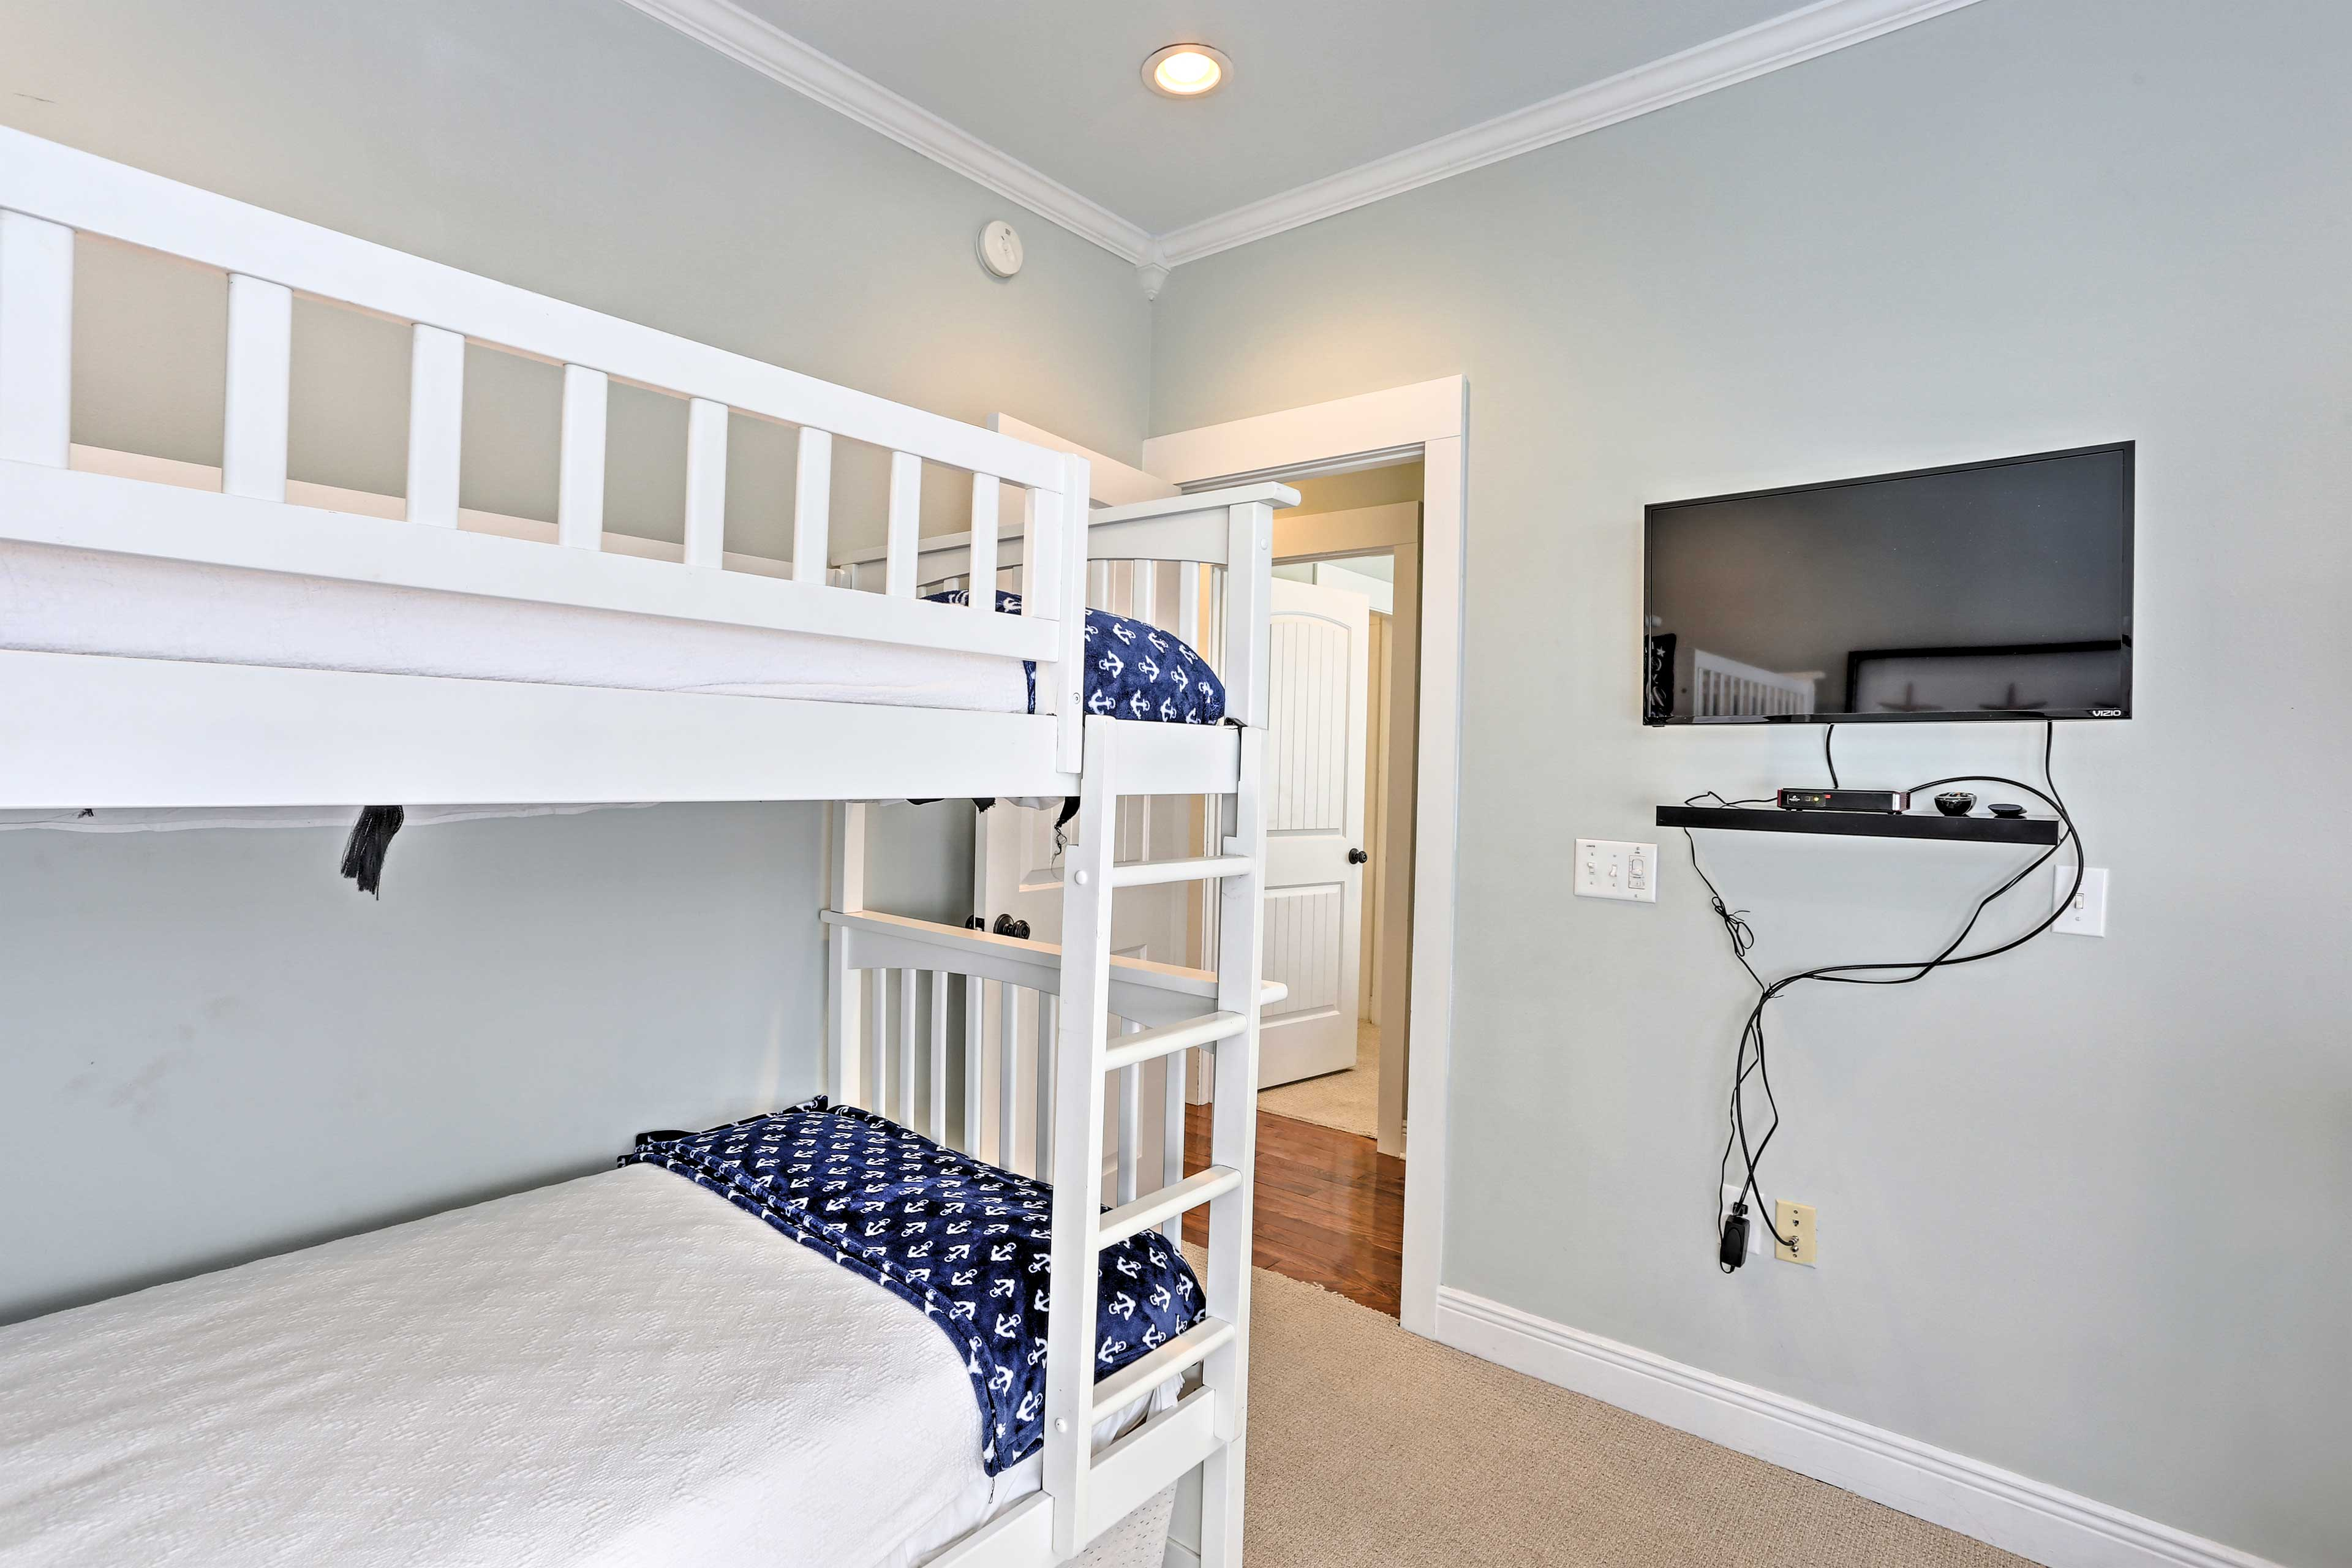 The space features 2 twin-over-twin bunk beds.